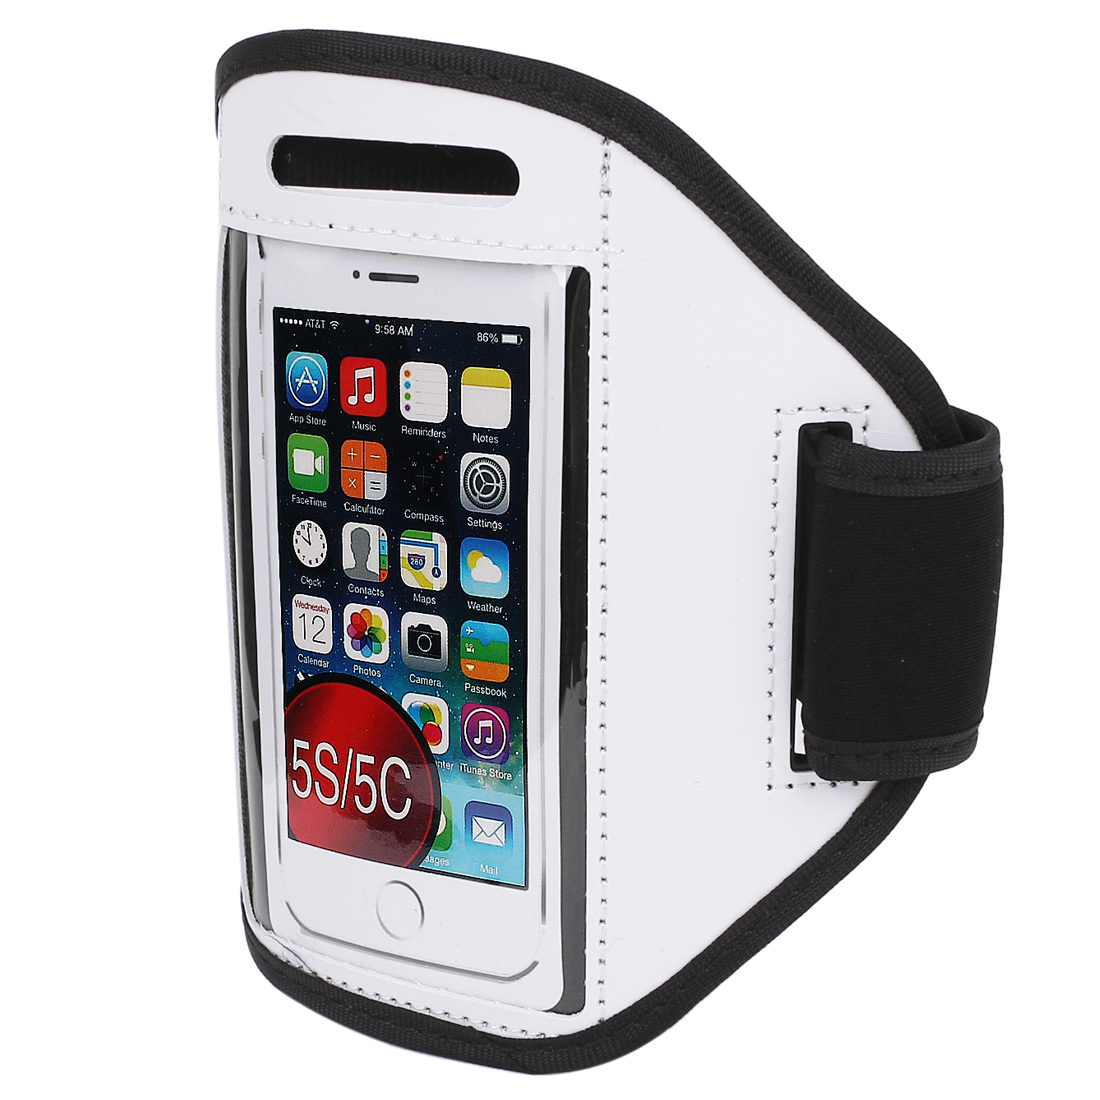 Sports Running Jogging Gym Armband Case Cover Holder White for iPhone 5 5C 5S